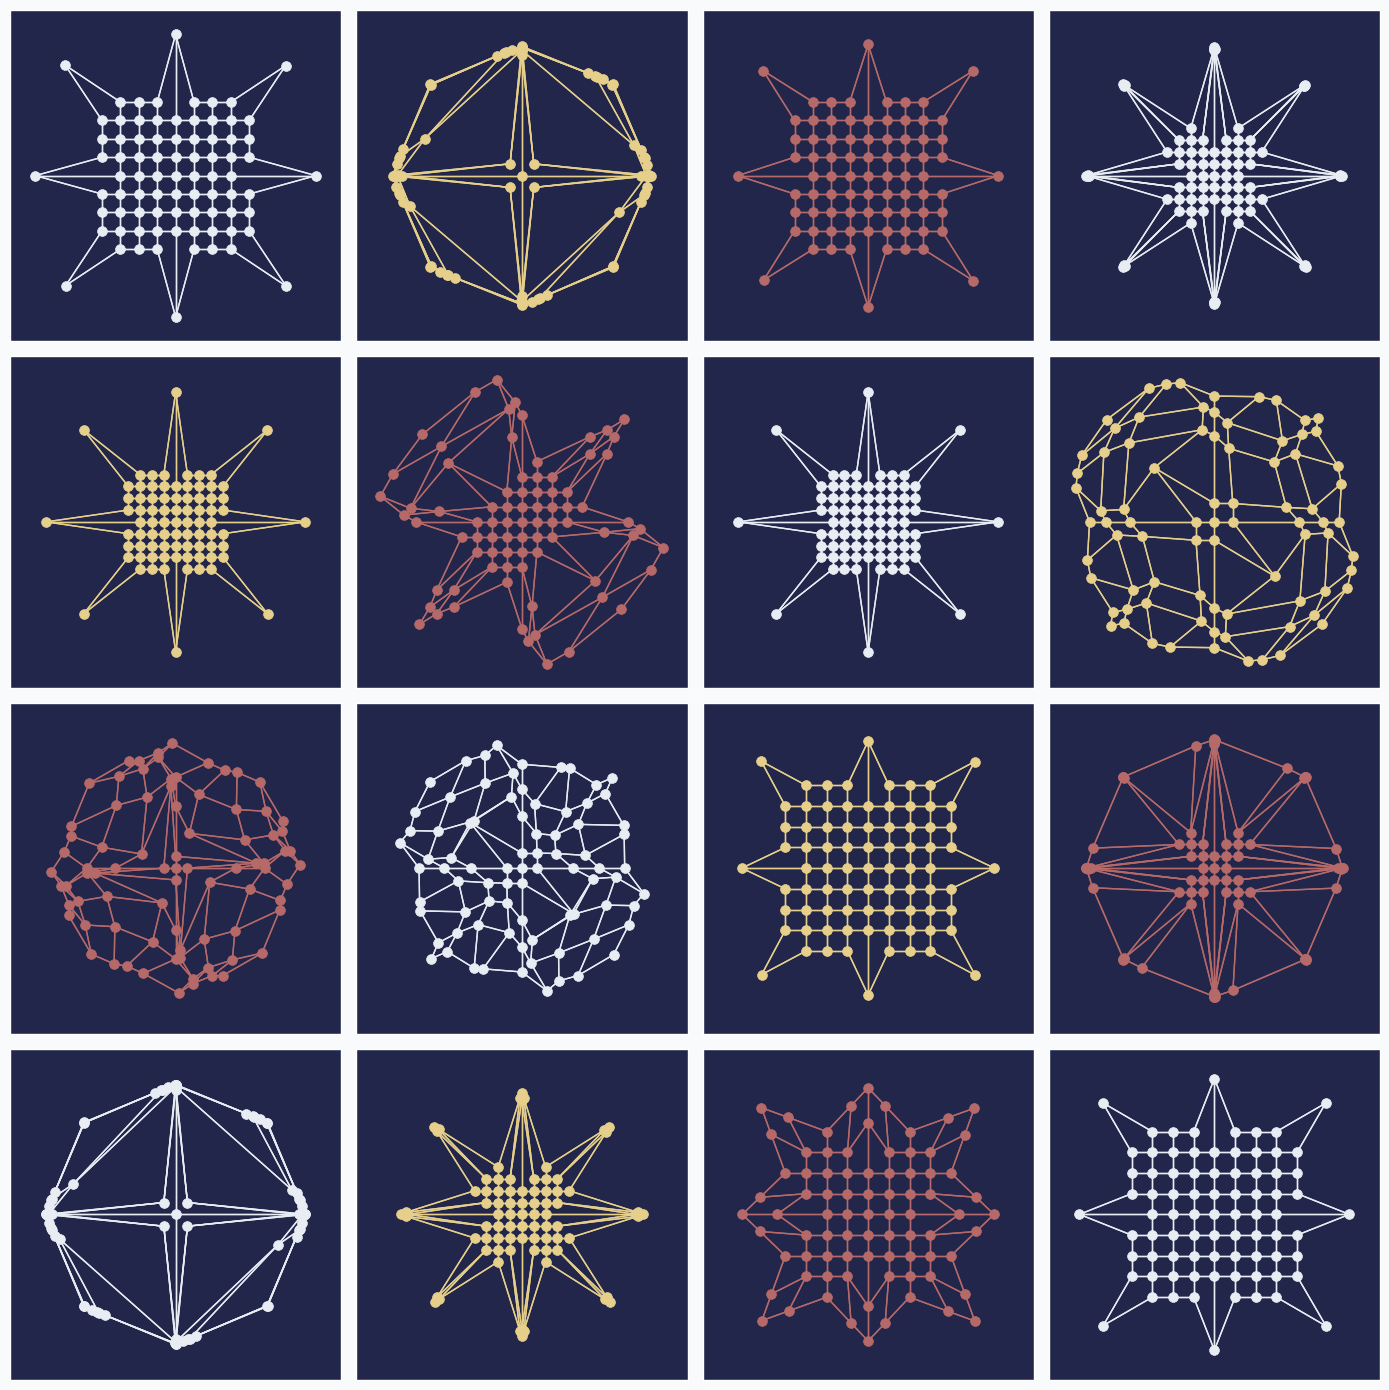 16 randomly generated patterns with SOFM network